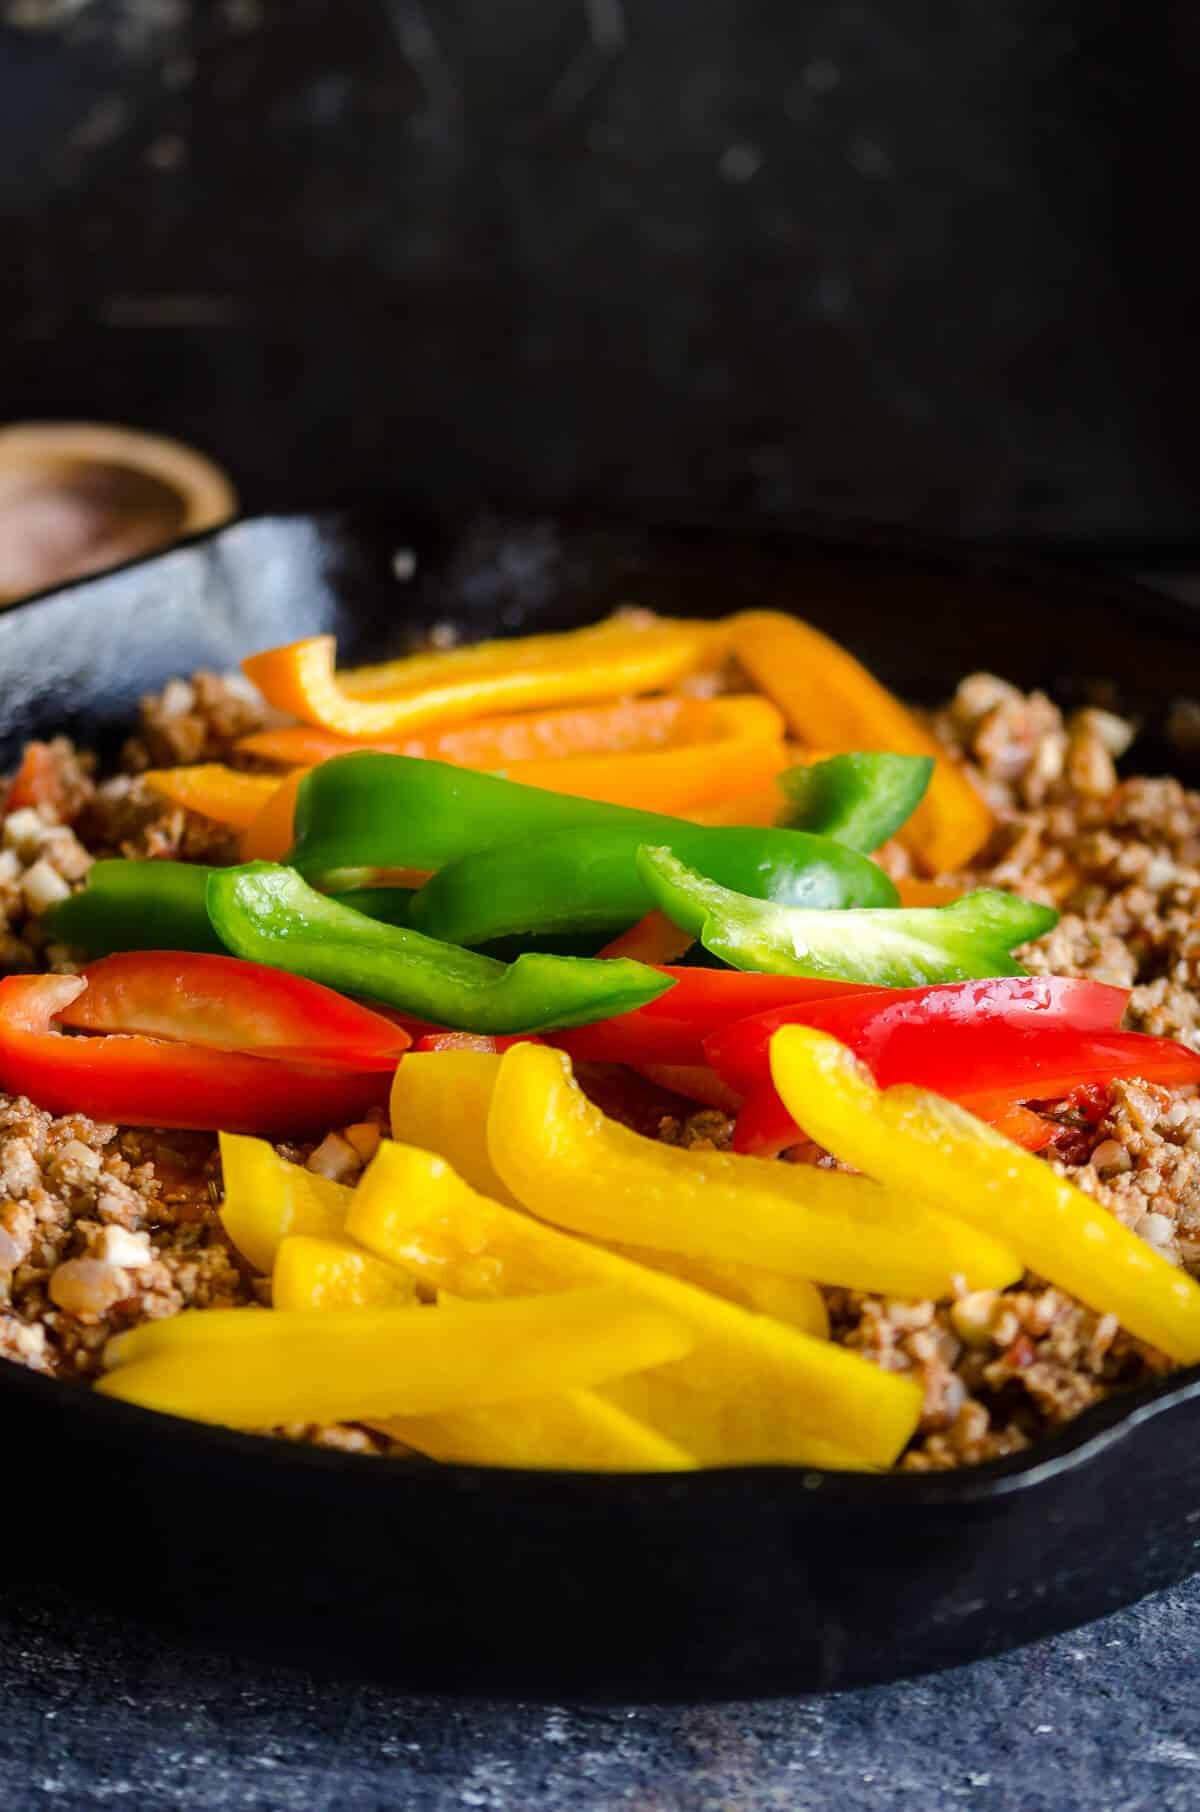 Cast iron skillet with ground turkey and slices of colored bell peppers